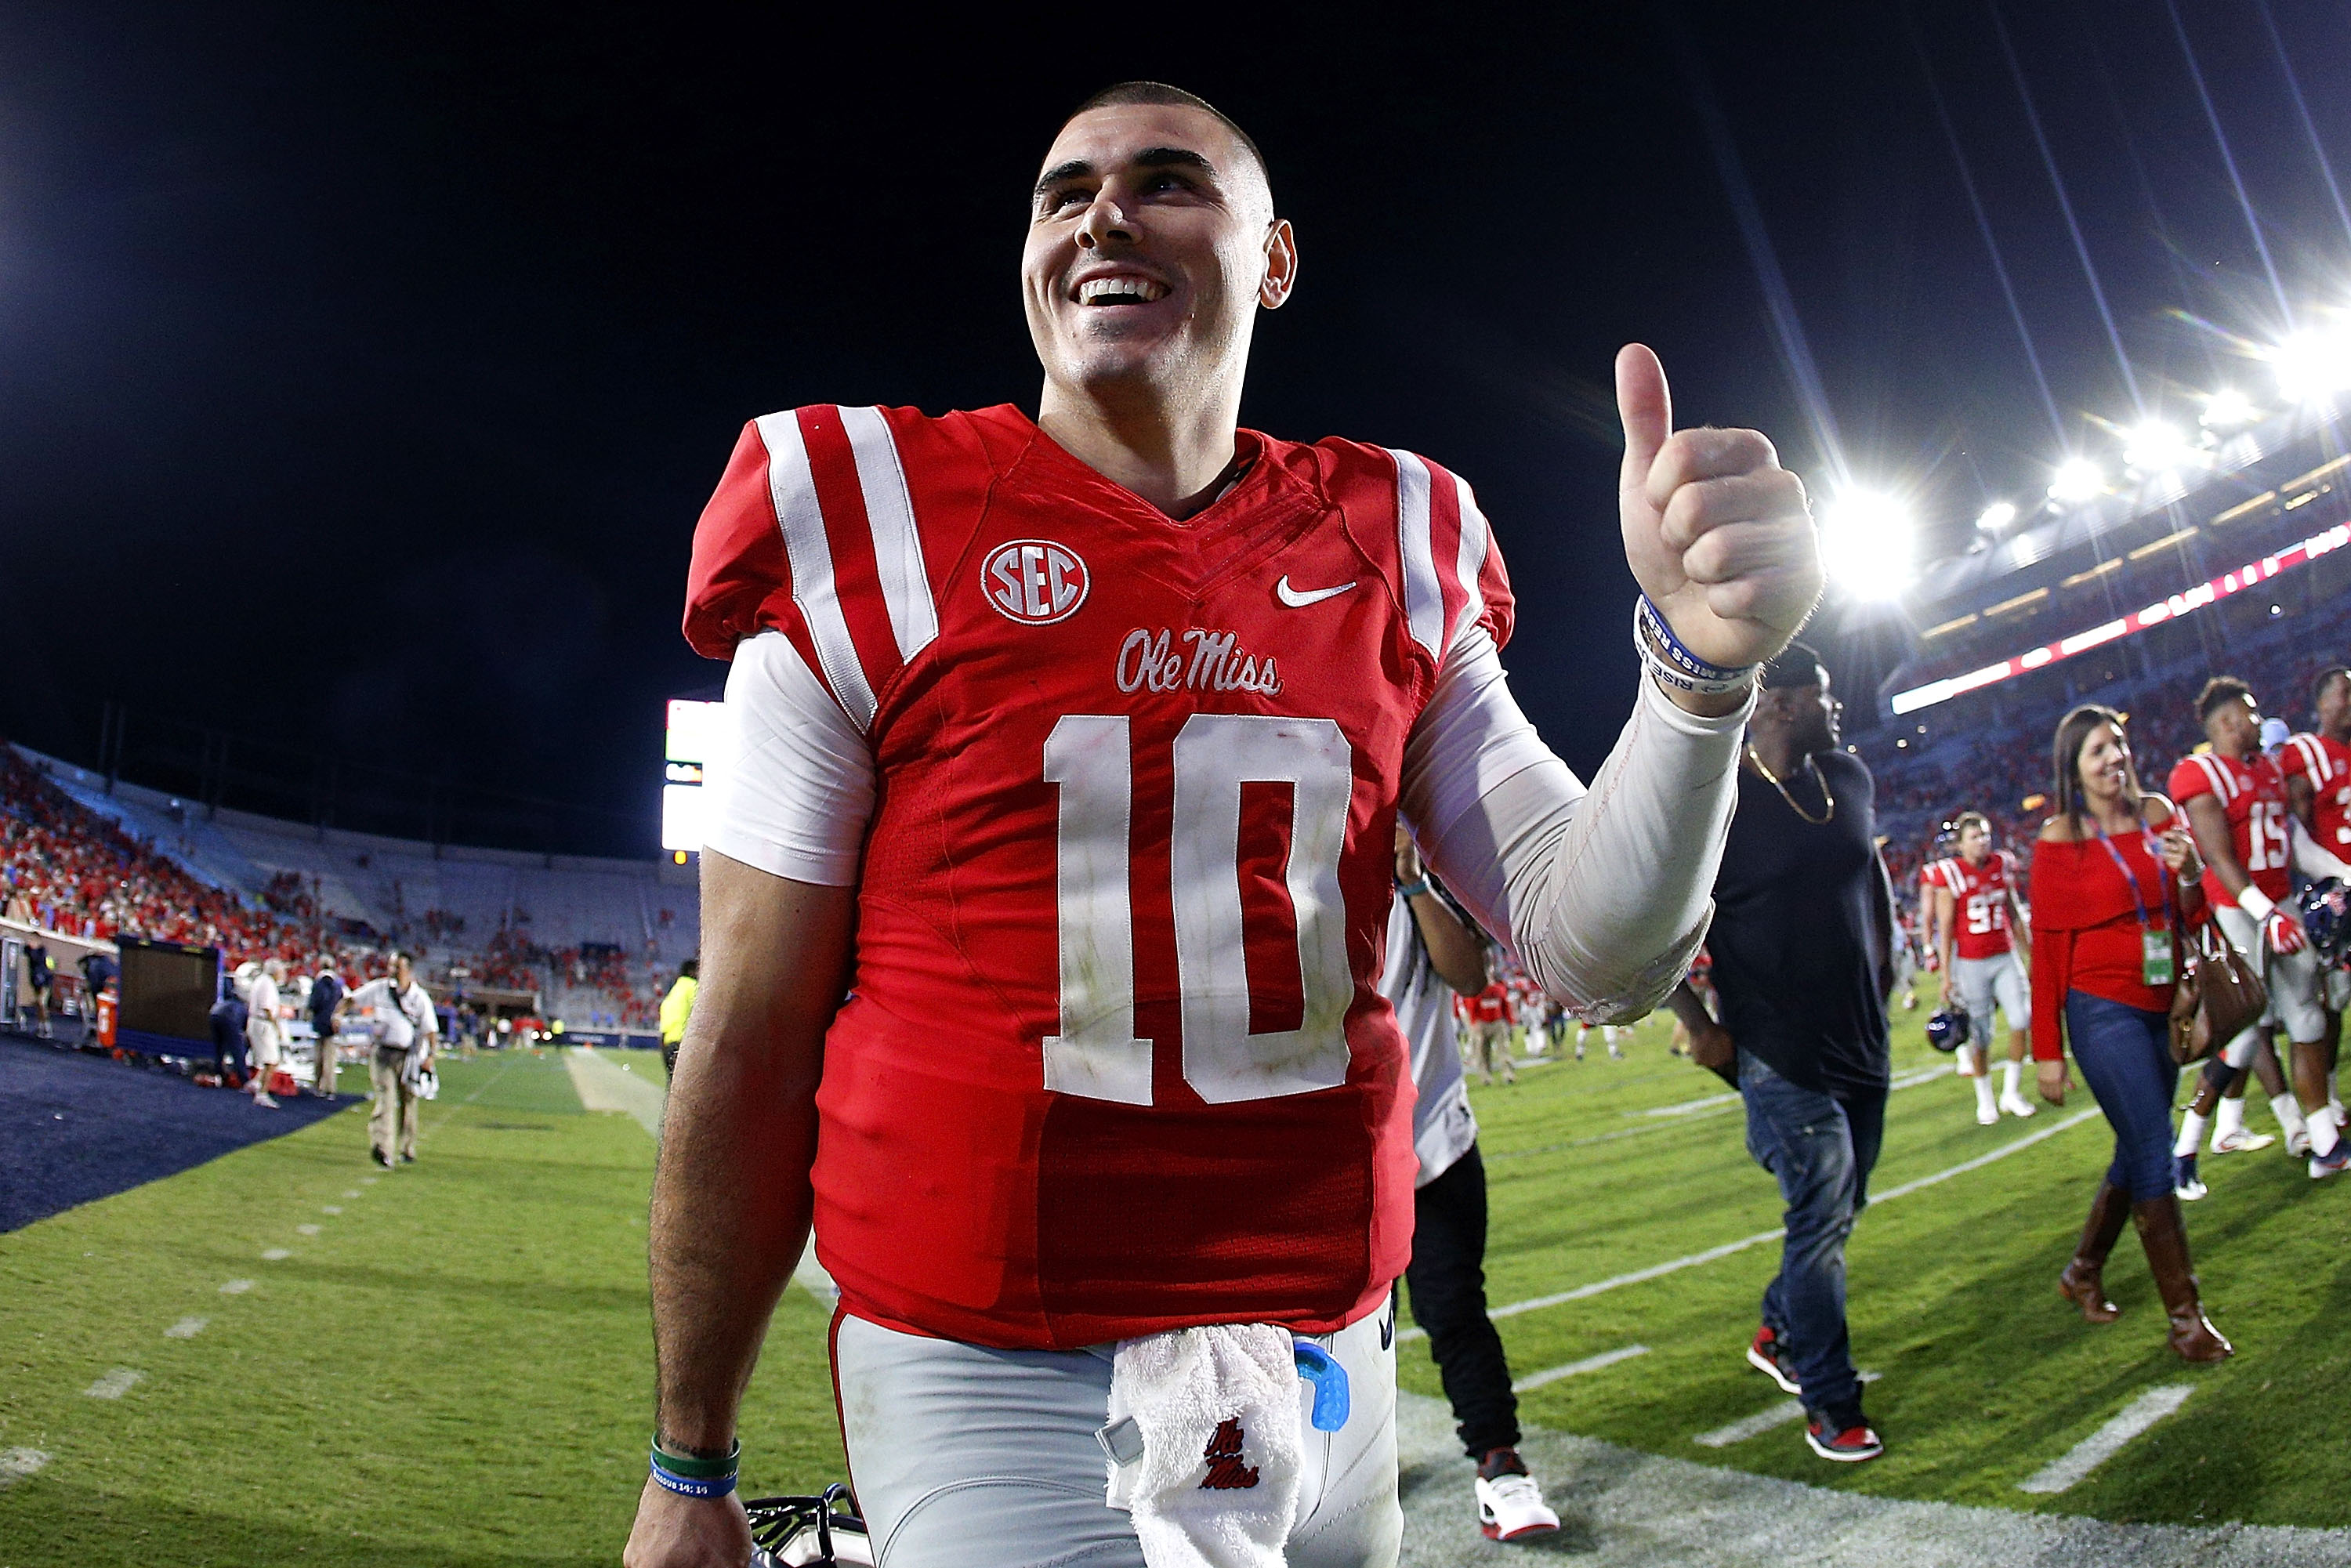 size 40 ed8ab 95aa1 Ole Miss QB Chad Kelly attends game at his high school ...